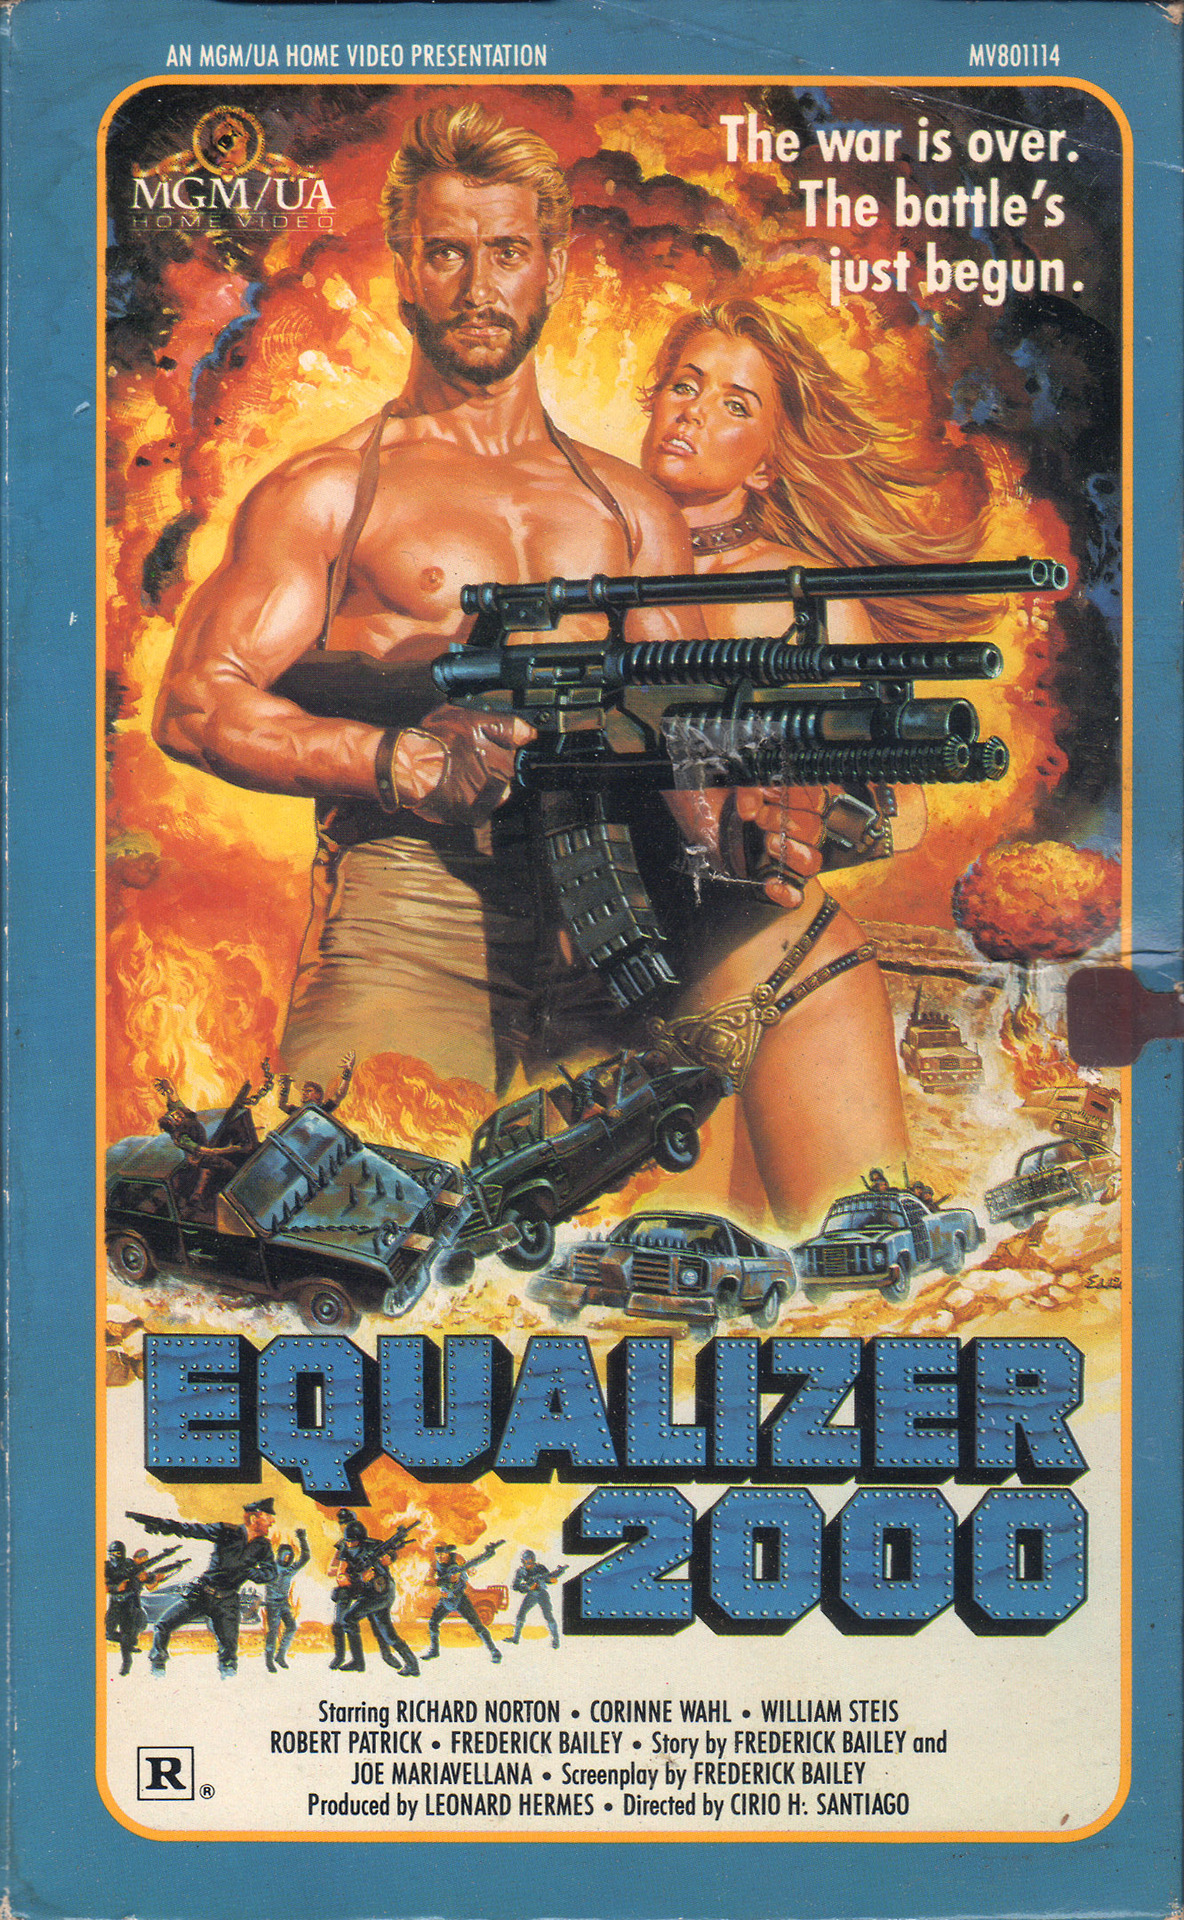 vhs covers illustrations 5